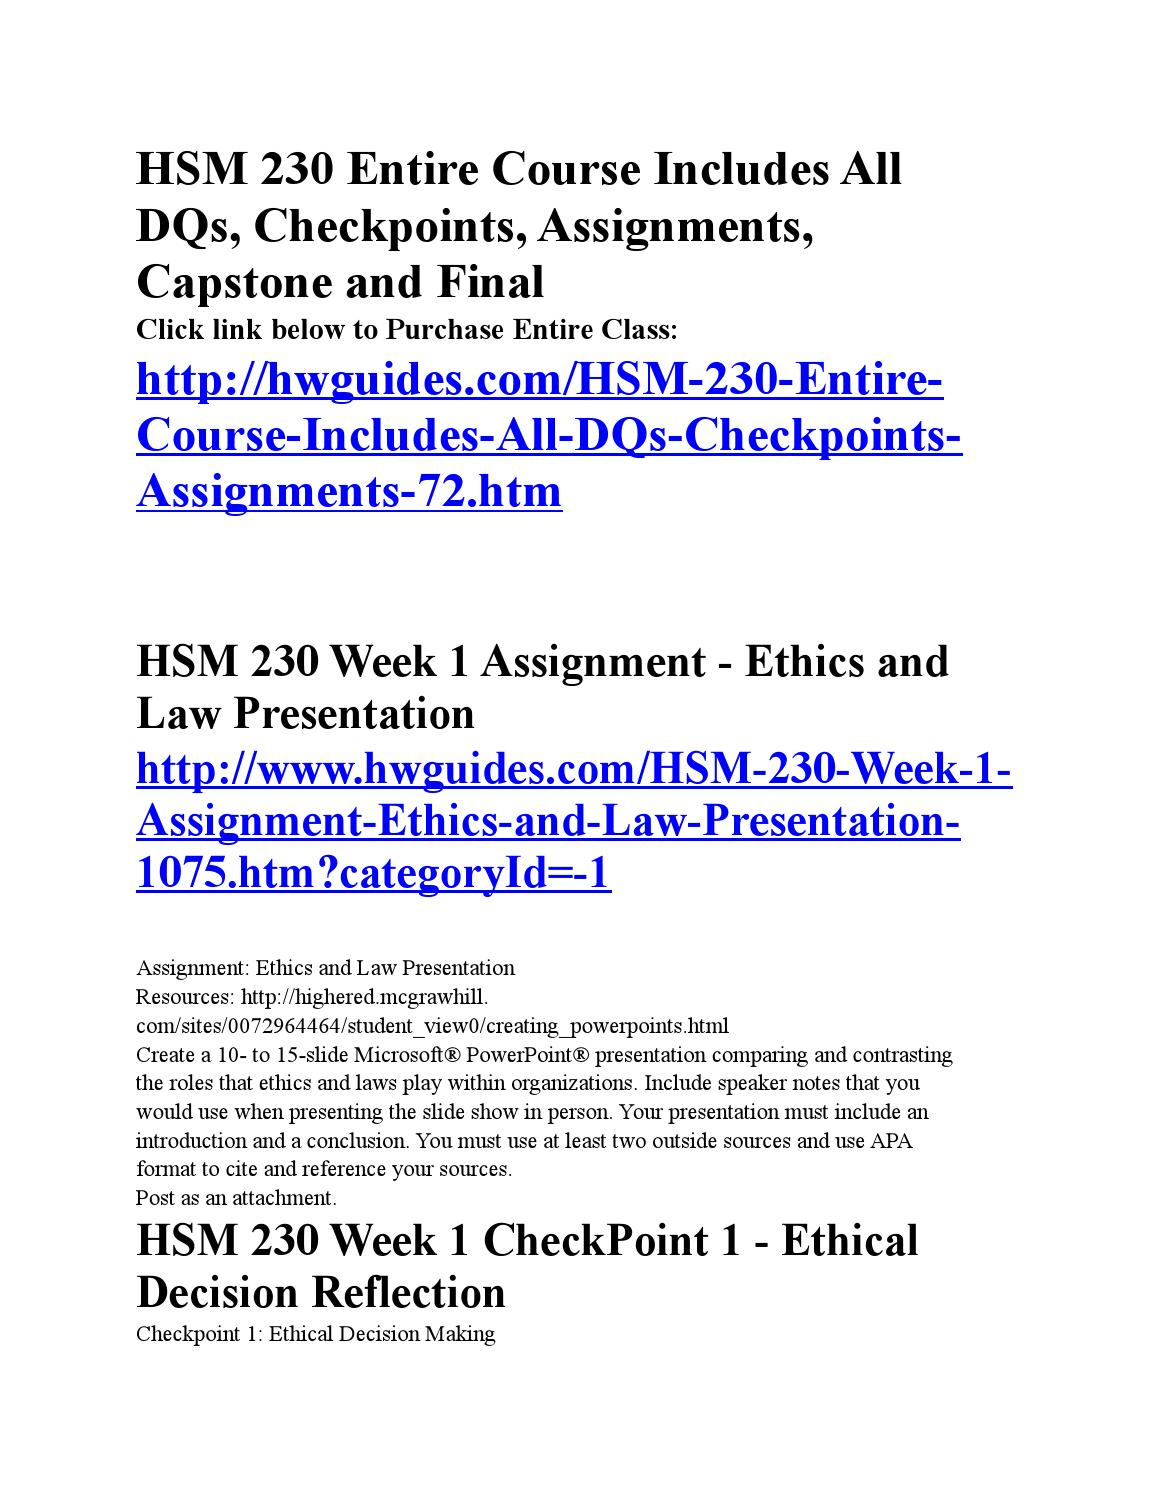 hsm 230 building an ethical organization part Values statement: expand and incorporate feedback from building an ethical organization part 1 hsm 230 week 9 final project building an ethical organization pa.